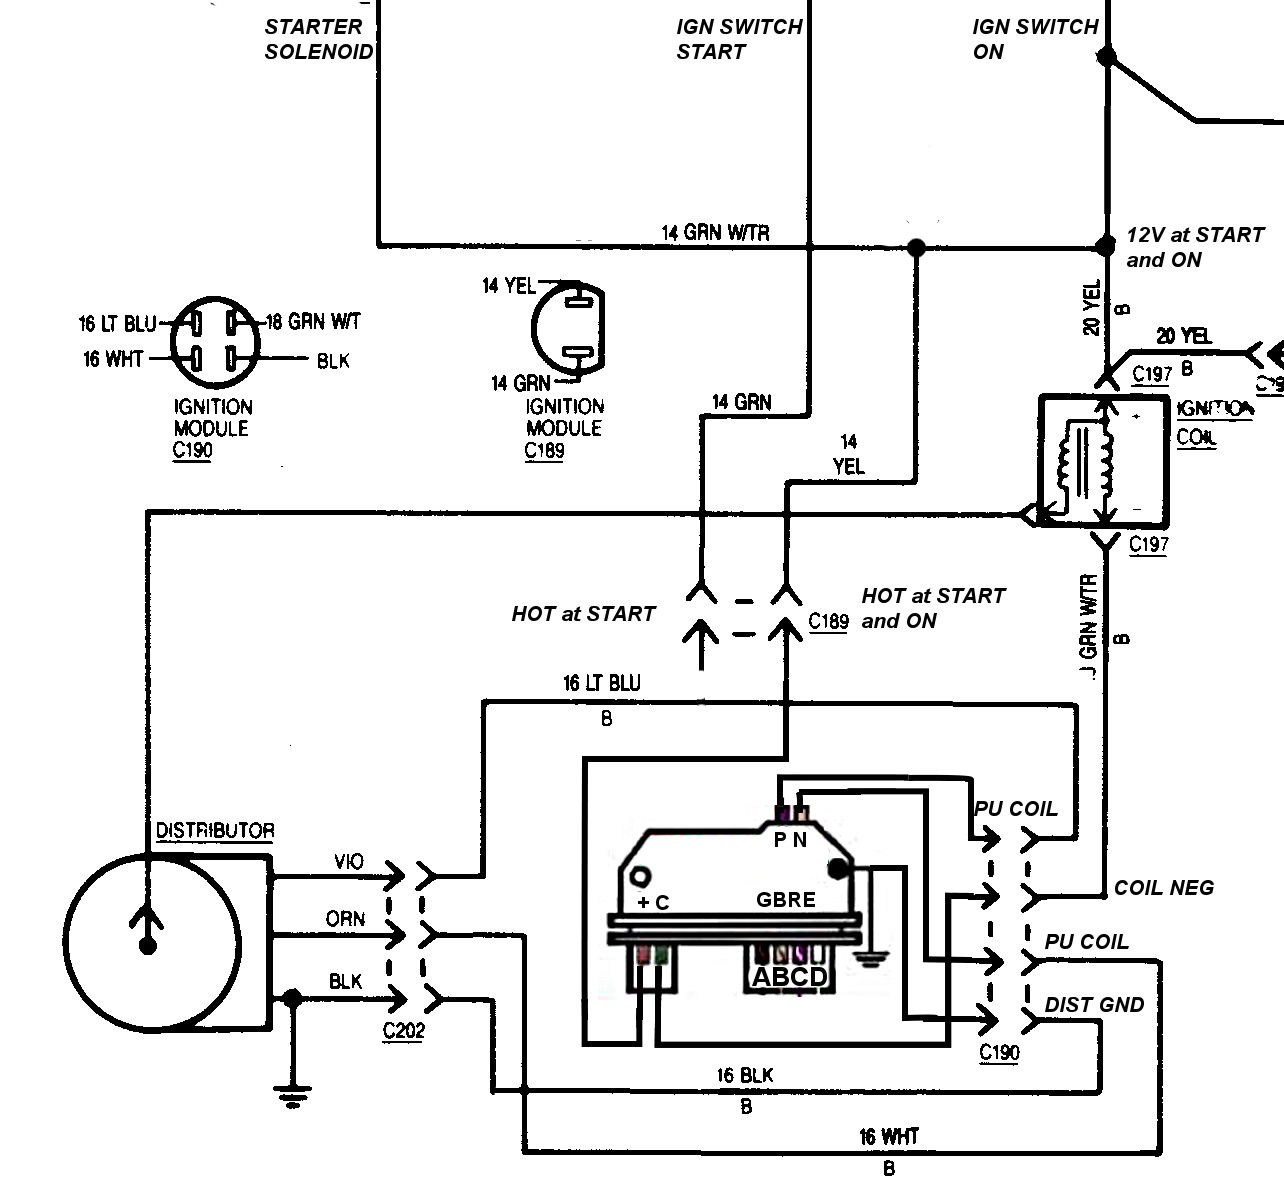 wiring diagrams hei gm the wiring diagram gm 5 pin hei module wiring gm wiring diagrams for car or truck